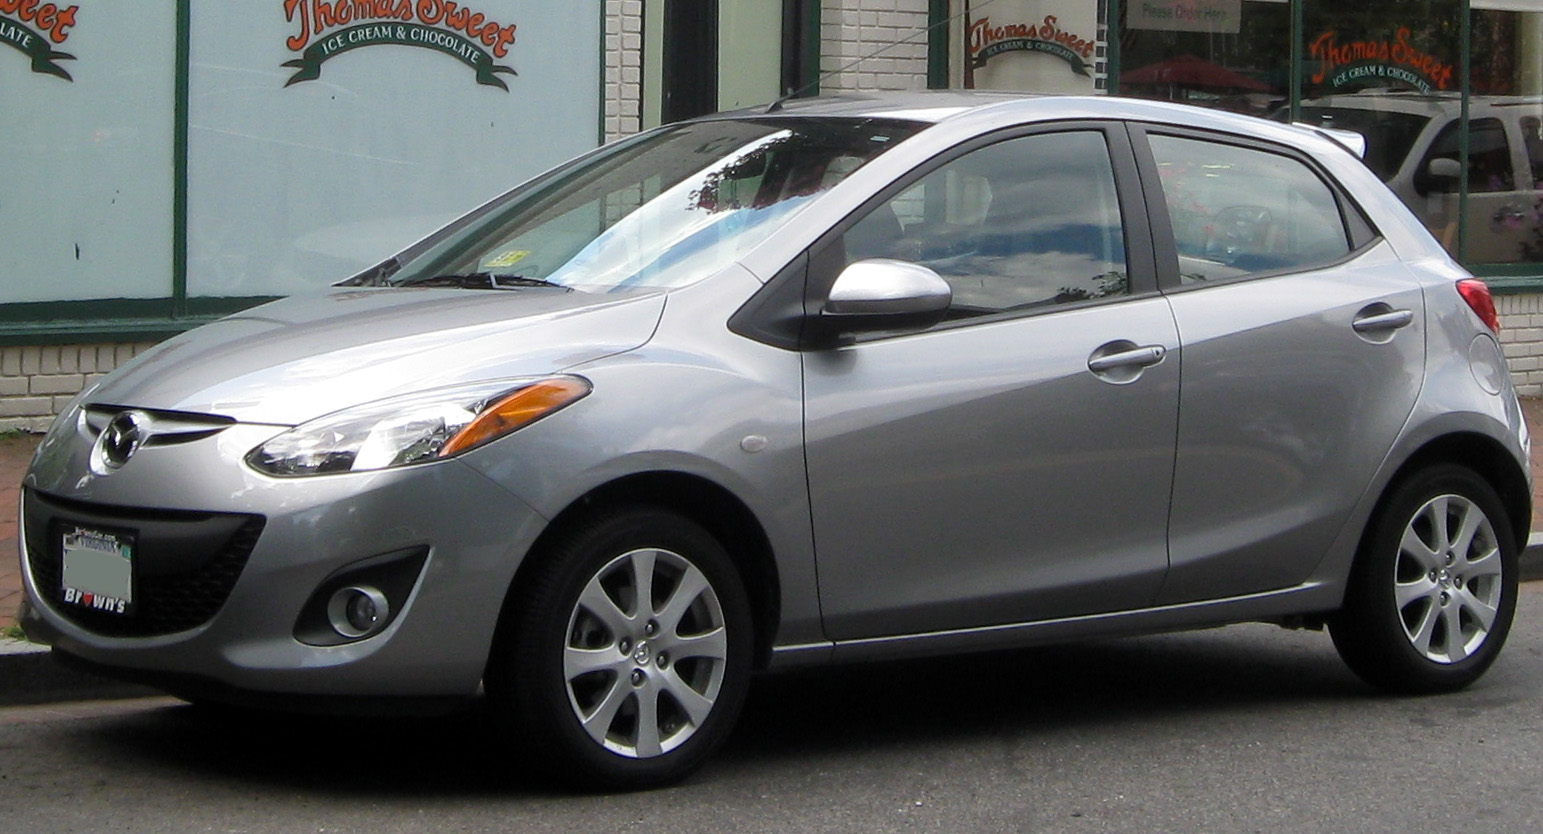 File:2011 Mazda2 -- 08-10-2011.jpg - Wikimedia Commons